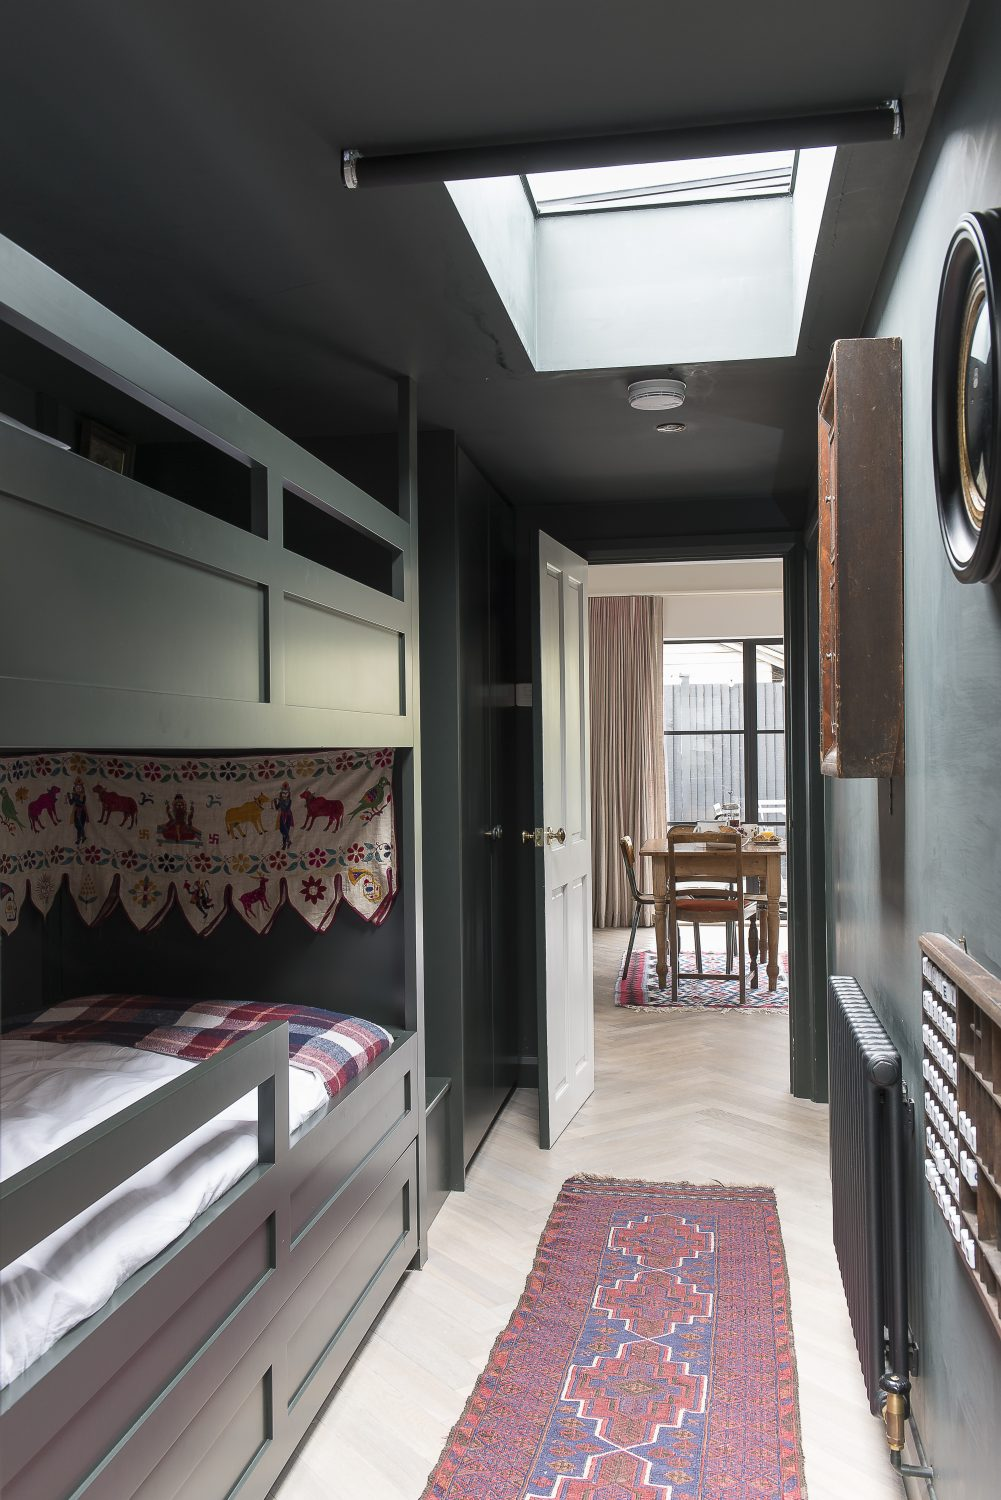 The second bedroom, with two built-in bunk beds, is painted a deep green. Guests often leave messages in an old printer's tray, into which Amy has put some letter cubes